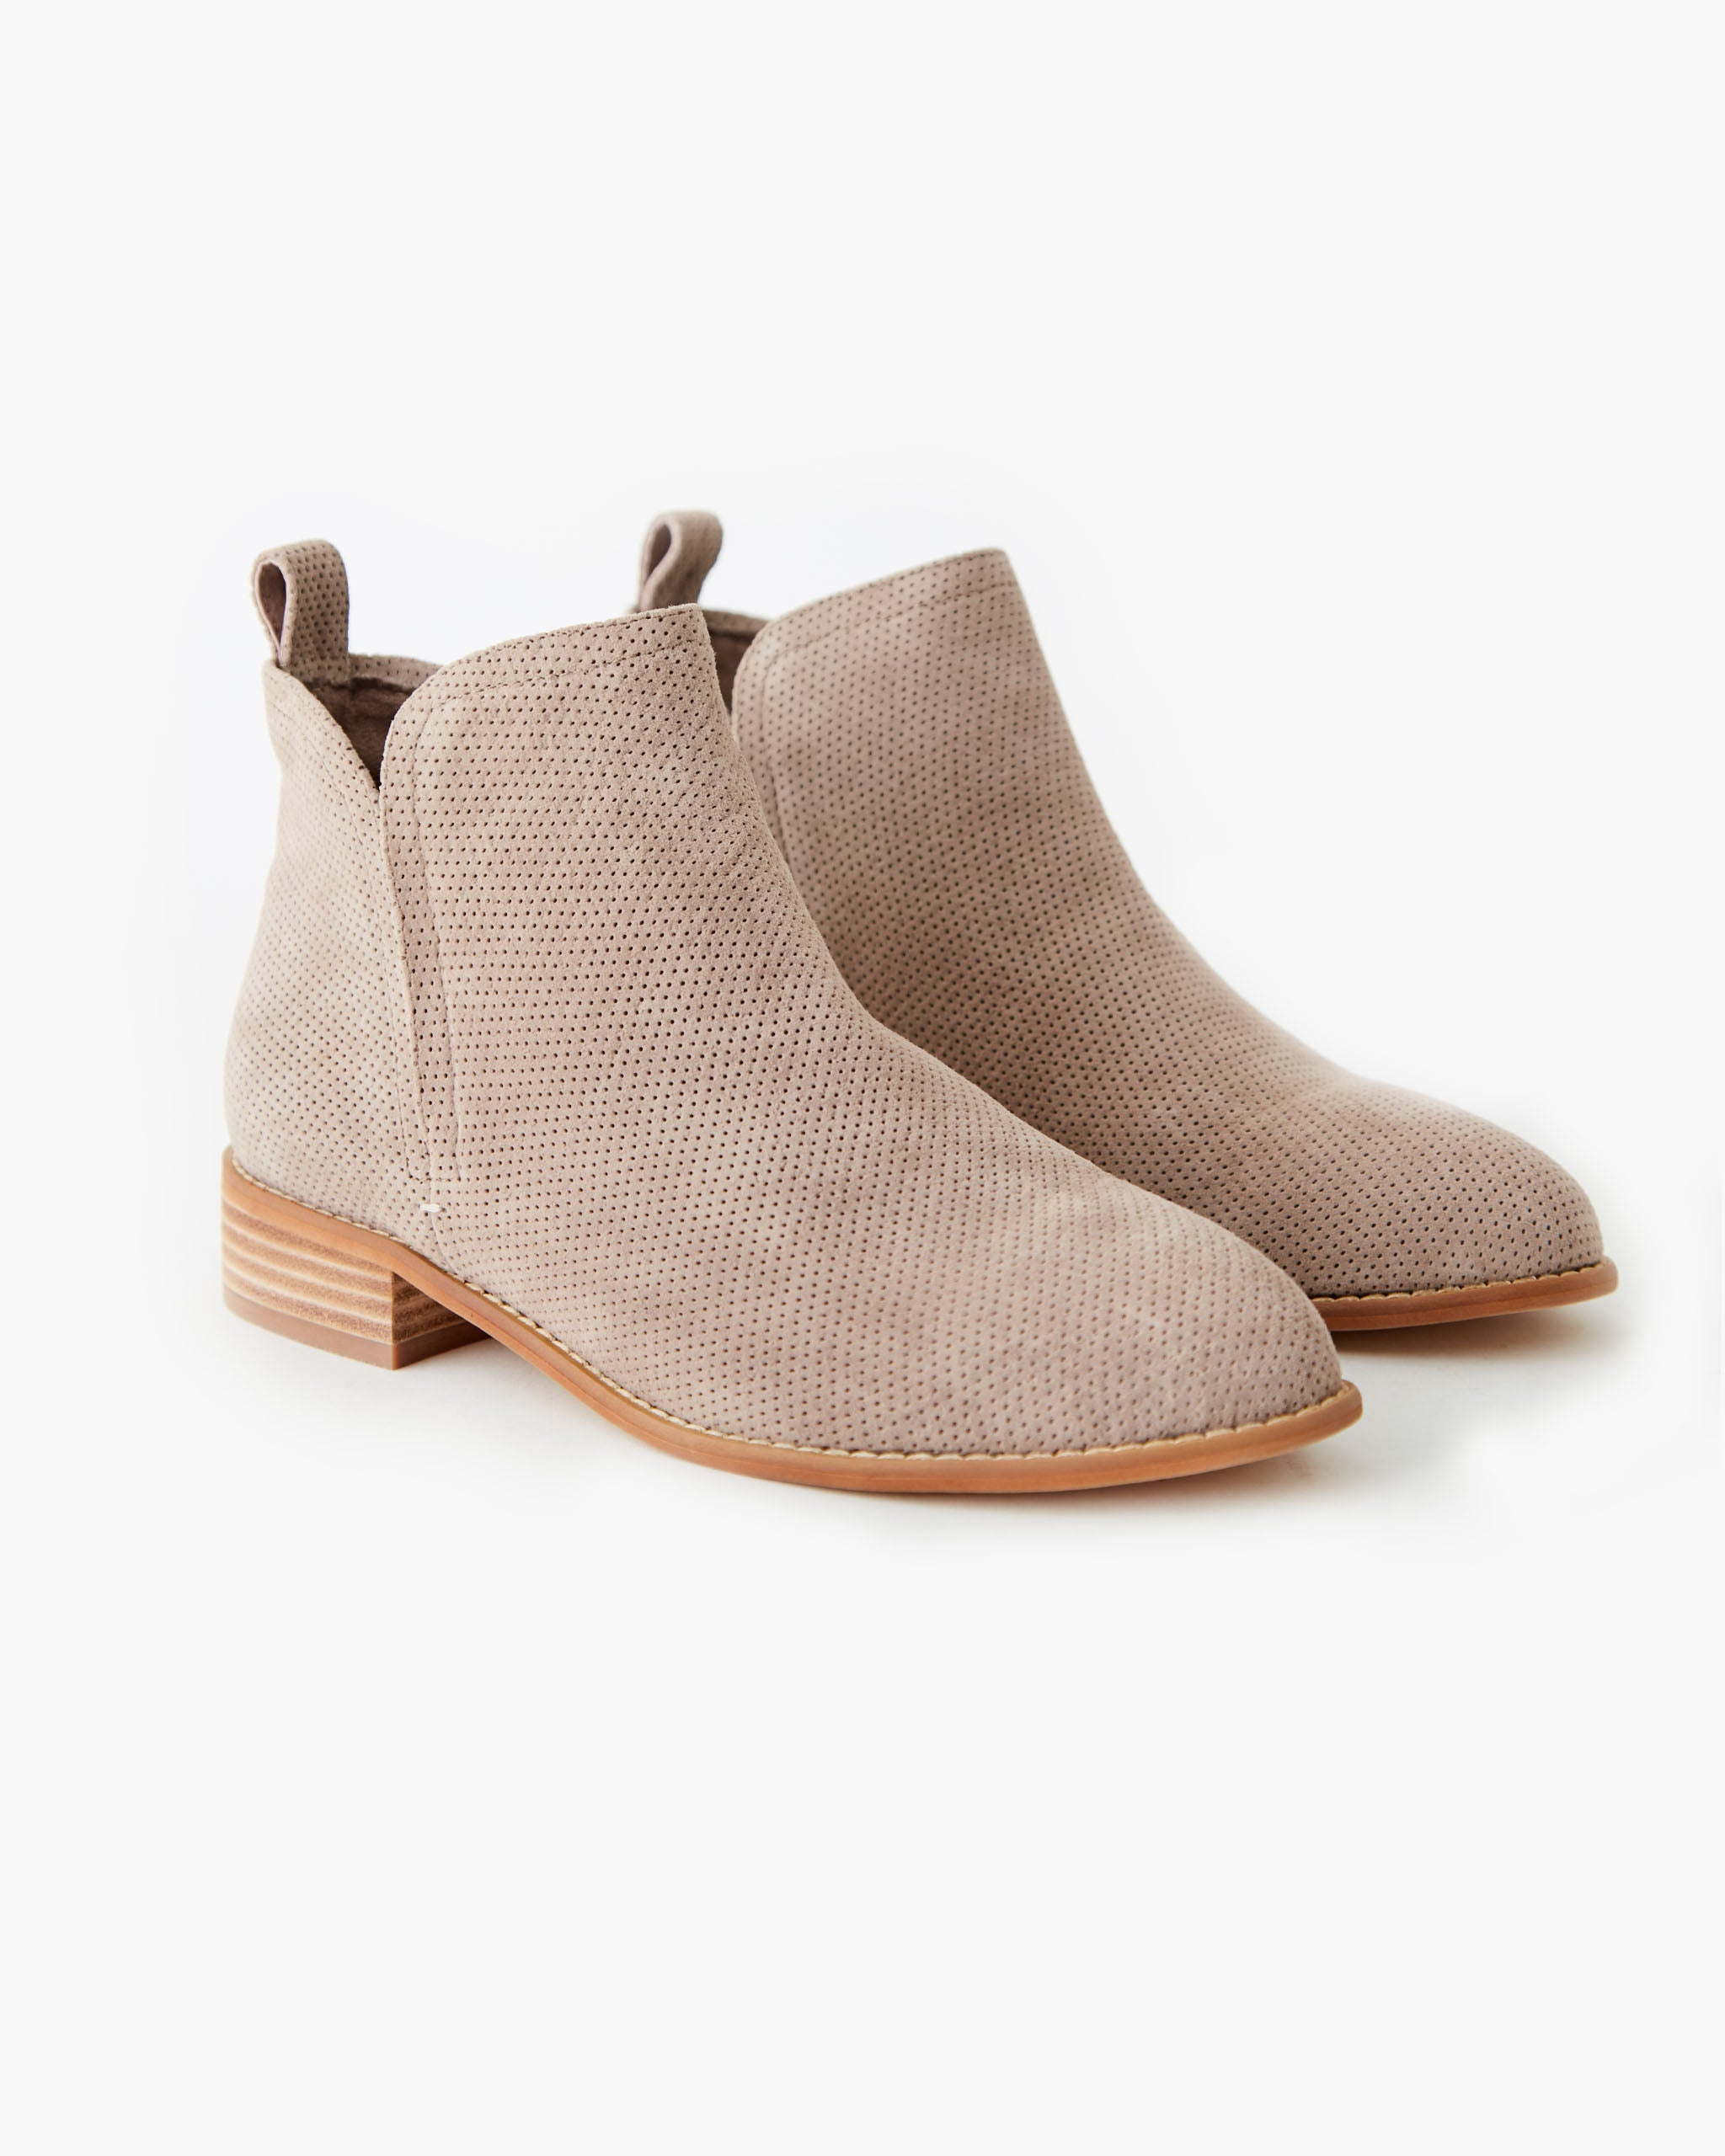 Douglas Leather Ankle Boot - Taupe Nubuck